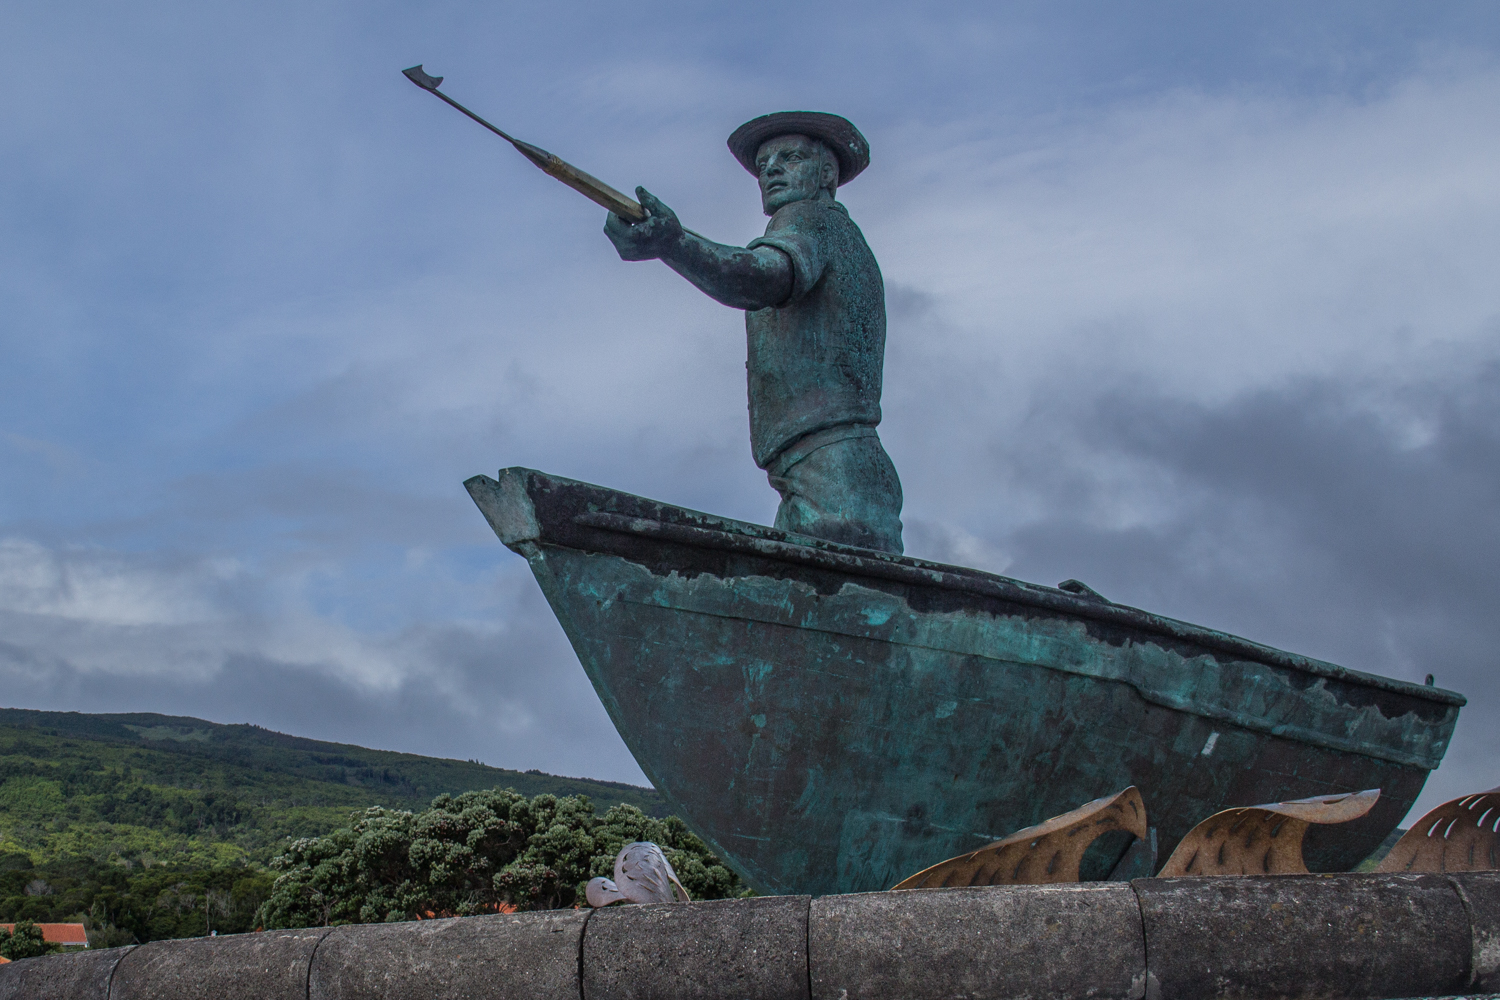 Monument of a whale hunter outside the Whaling Industry Museum on Pico Island in the Azores